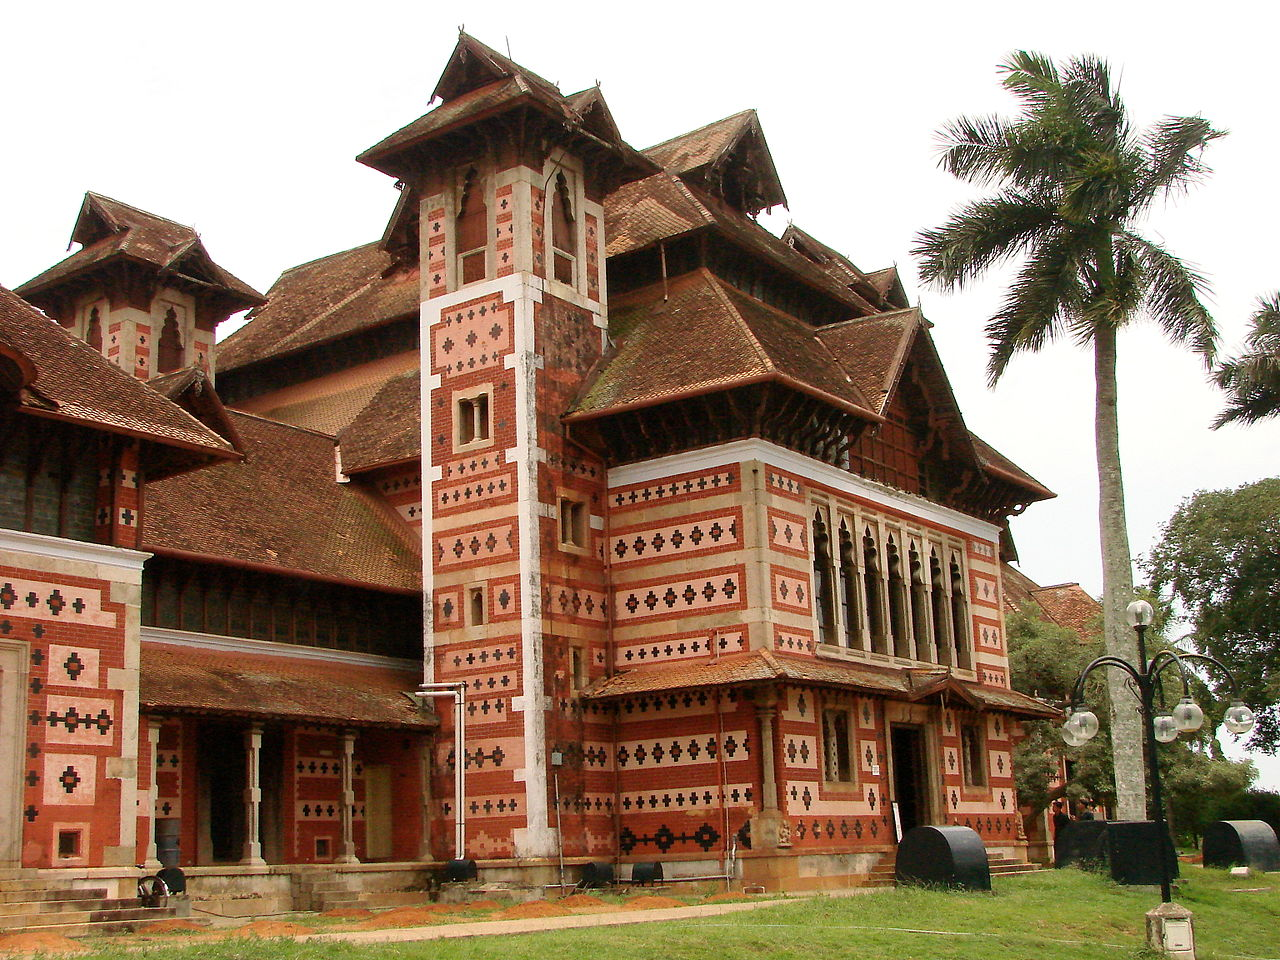 File:British Colonial Architecture on Zoo Grounds ...